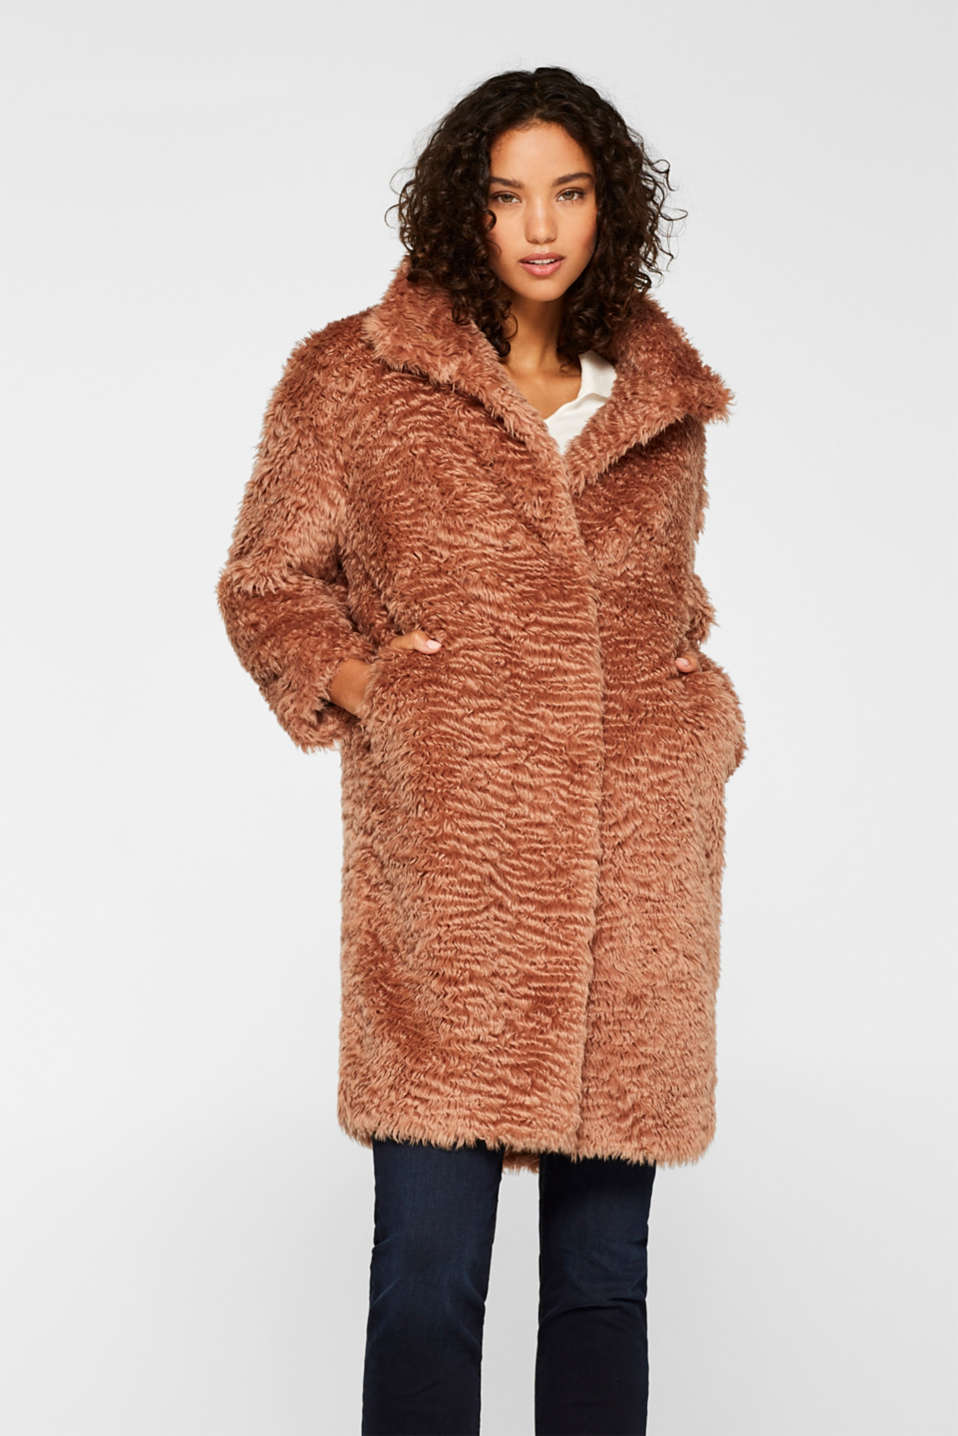 Esprit - Faux fur coat with a stand-up collar